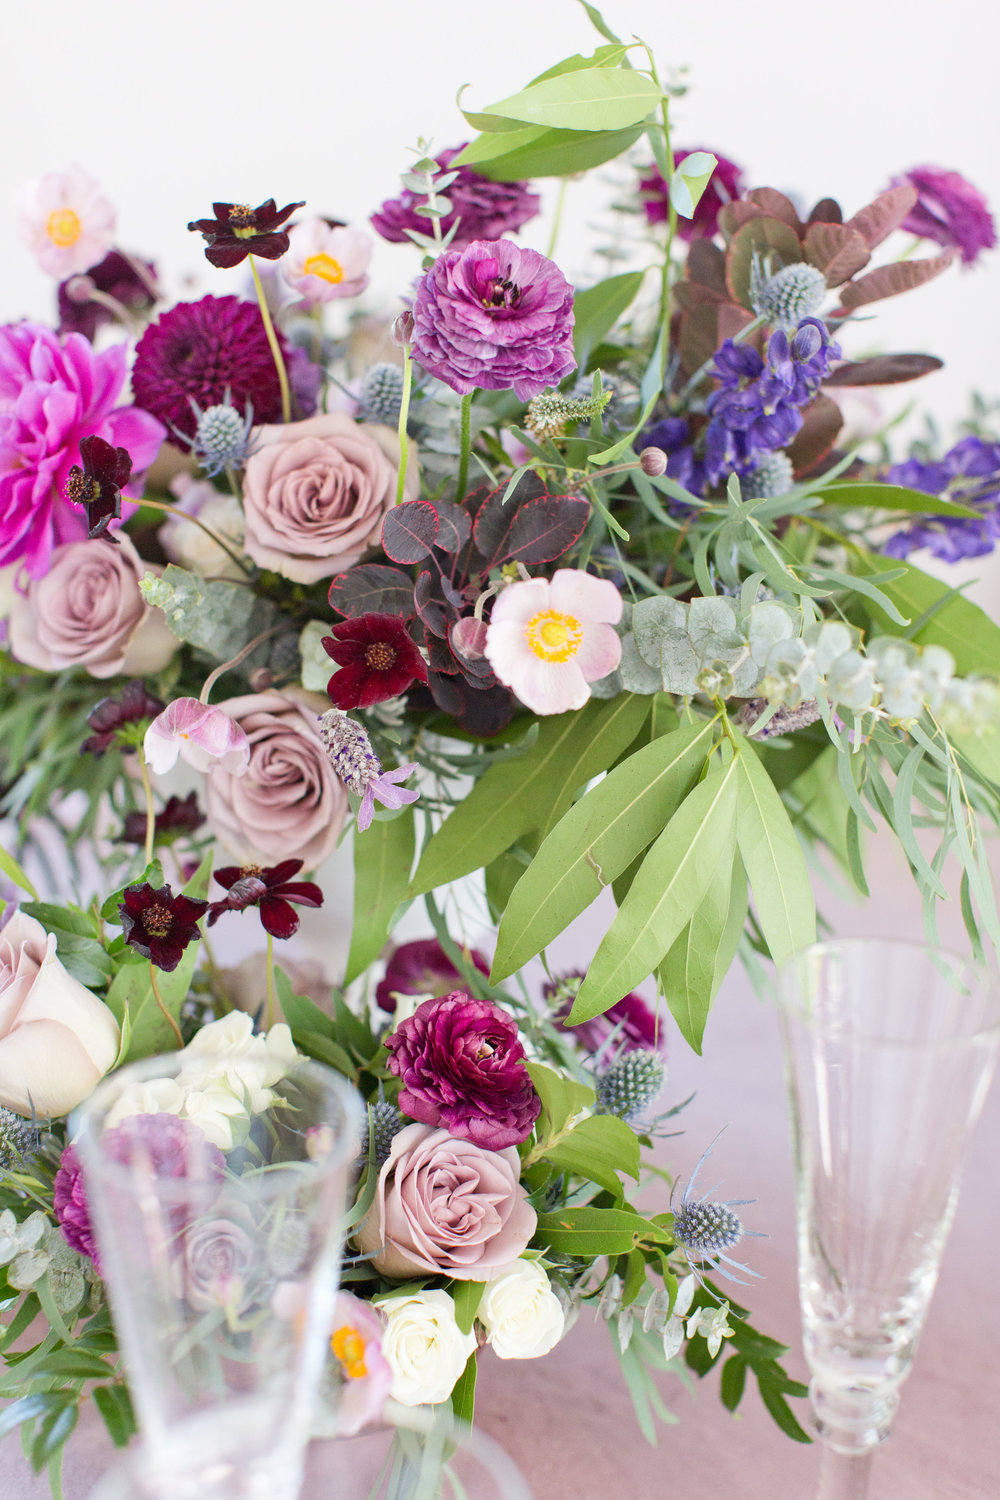 ultra violet pantone wedding flowers inspiration